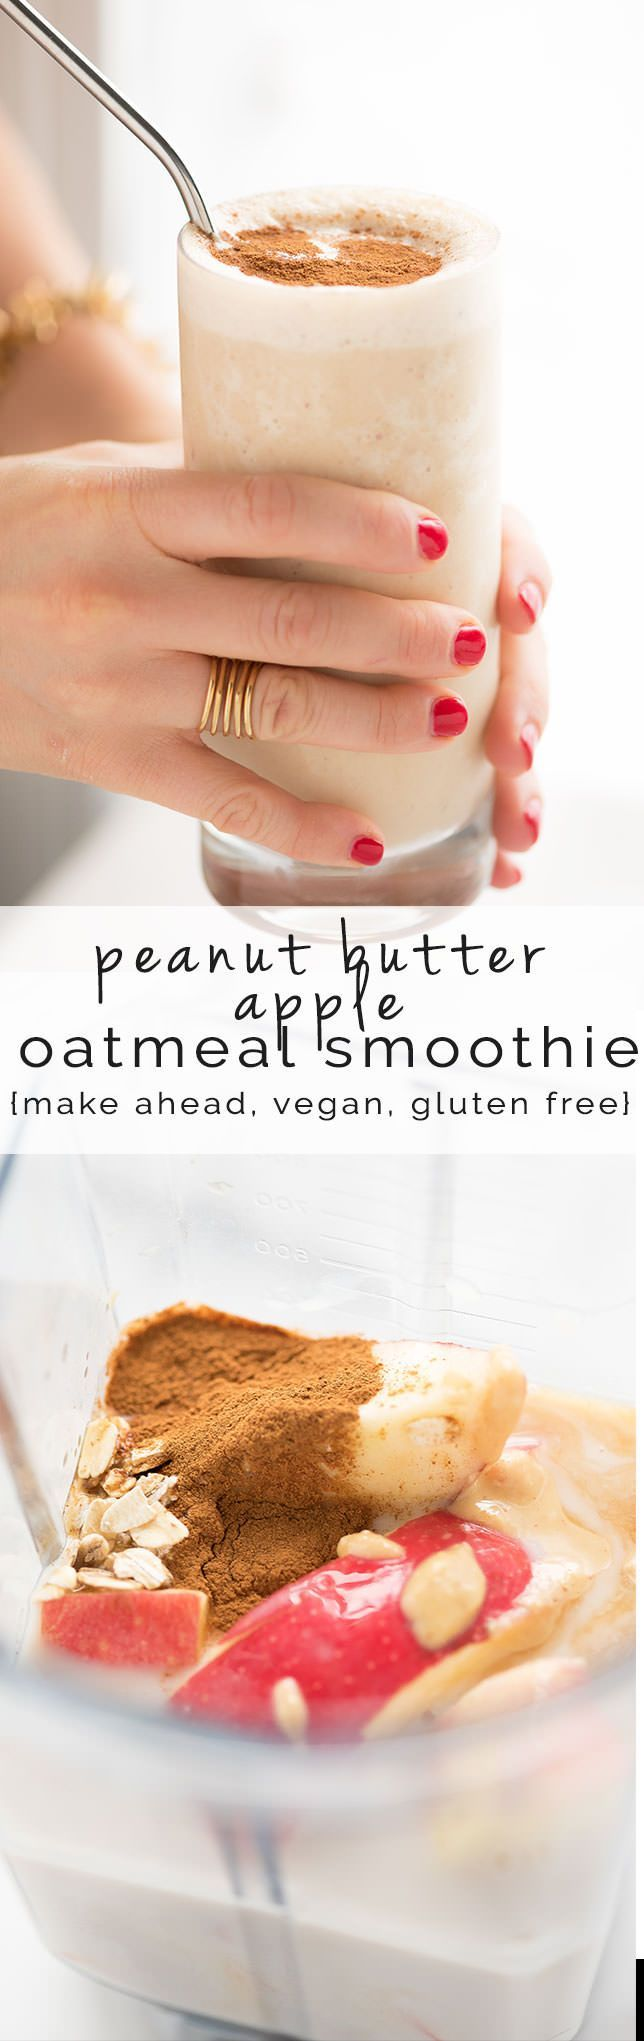 Apple Oatmeal Smoothie Recipes | Peanut Butter, Breakfast, Vegan, Gluten Free, Healthy, Weightloss, Cinnamon